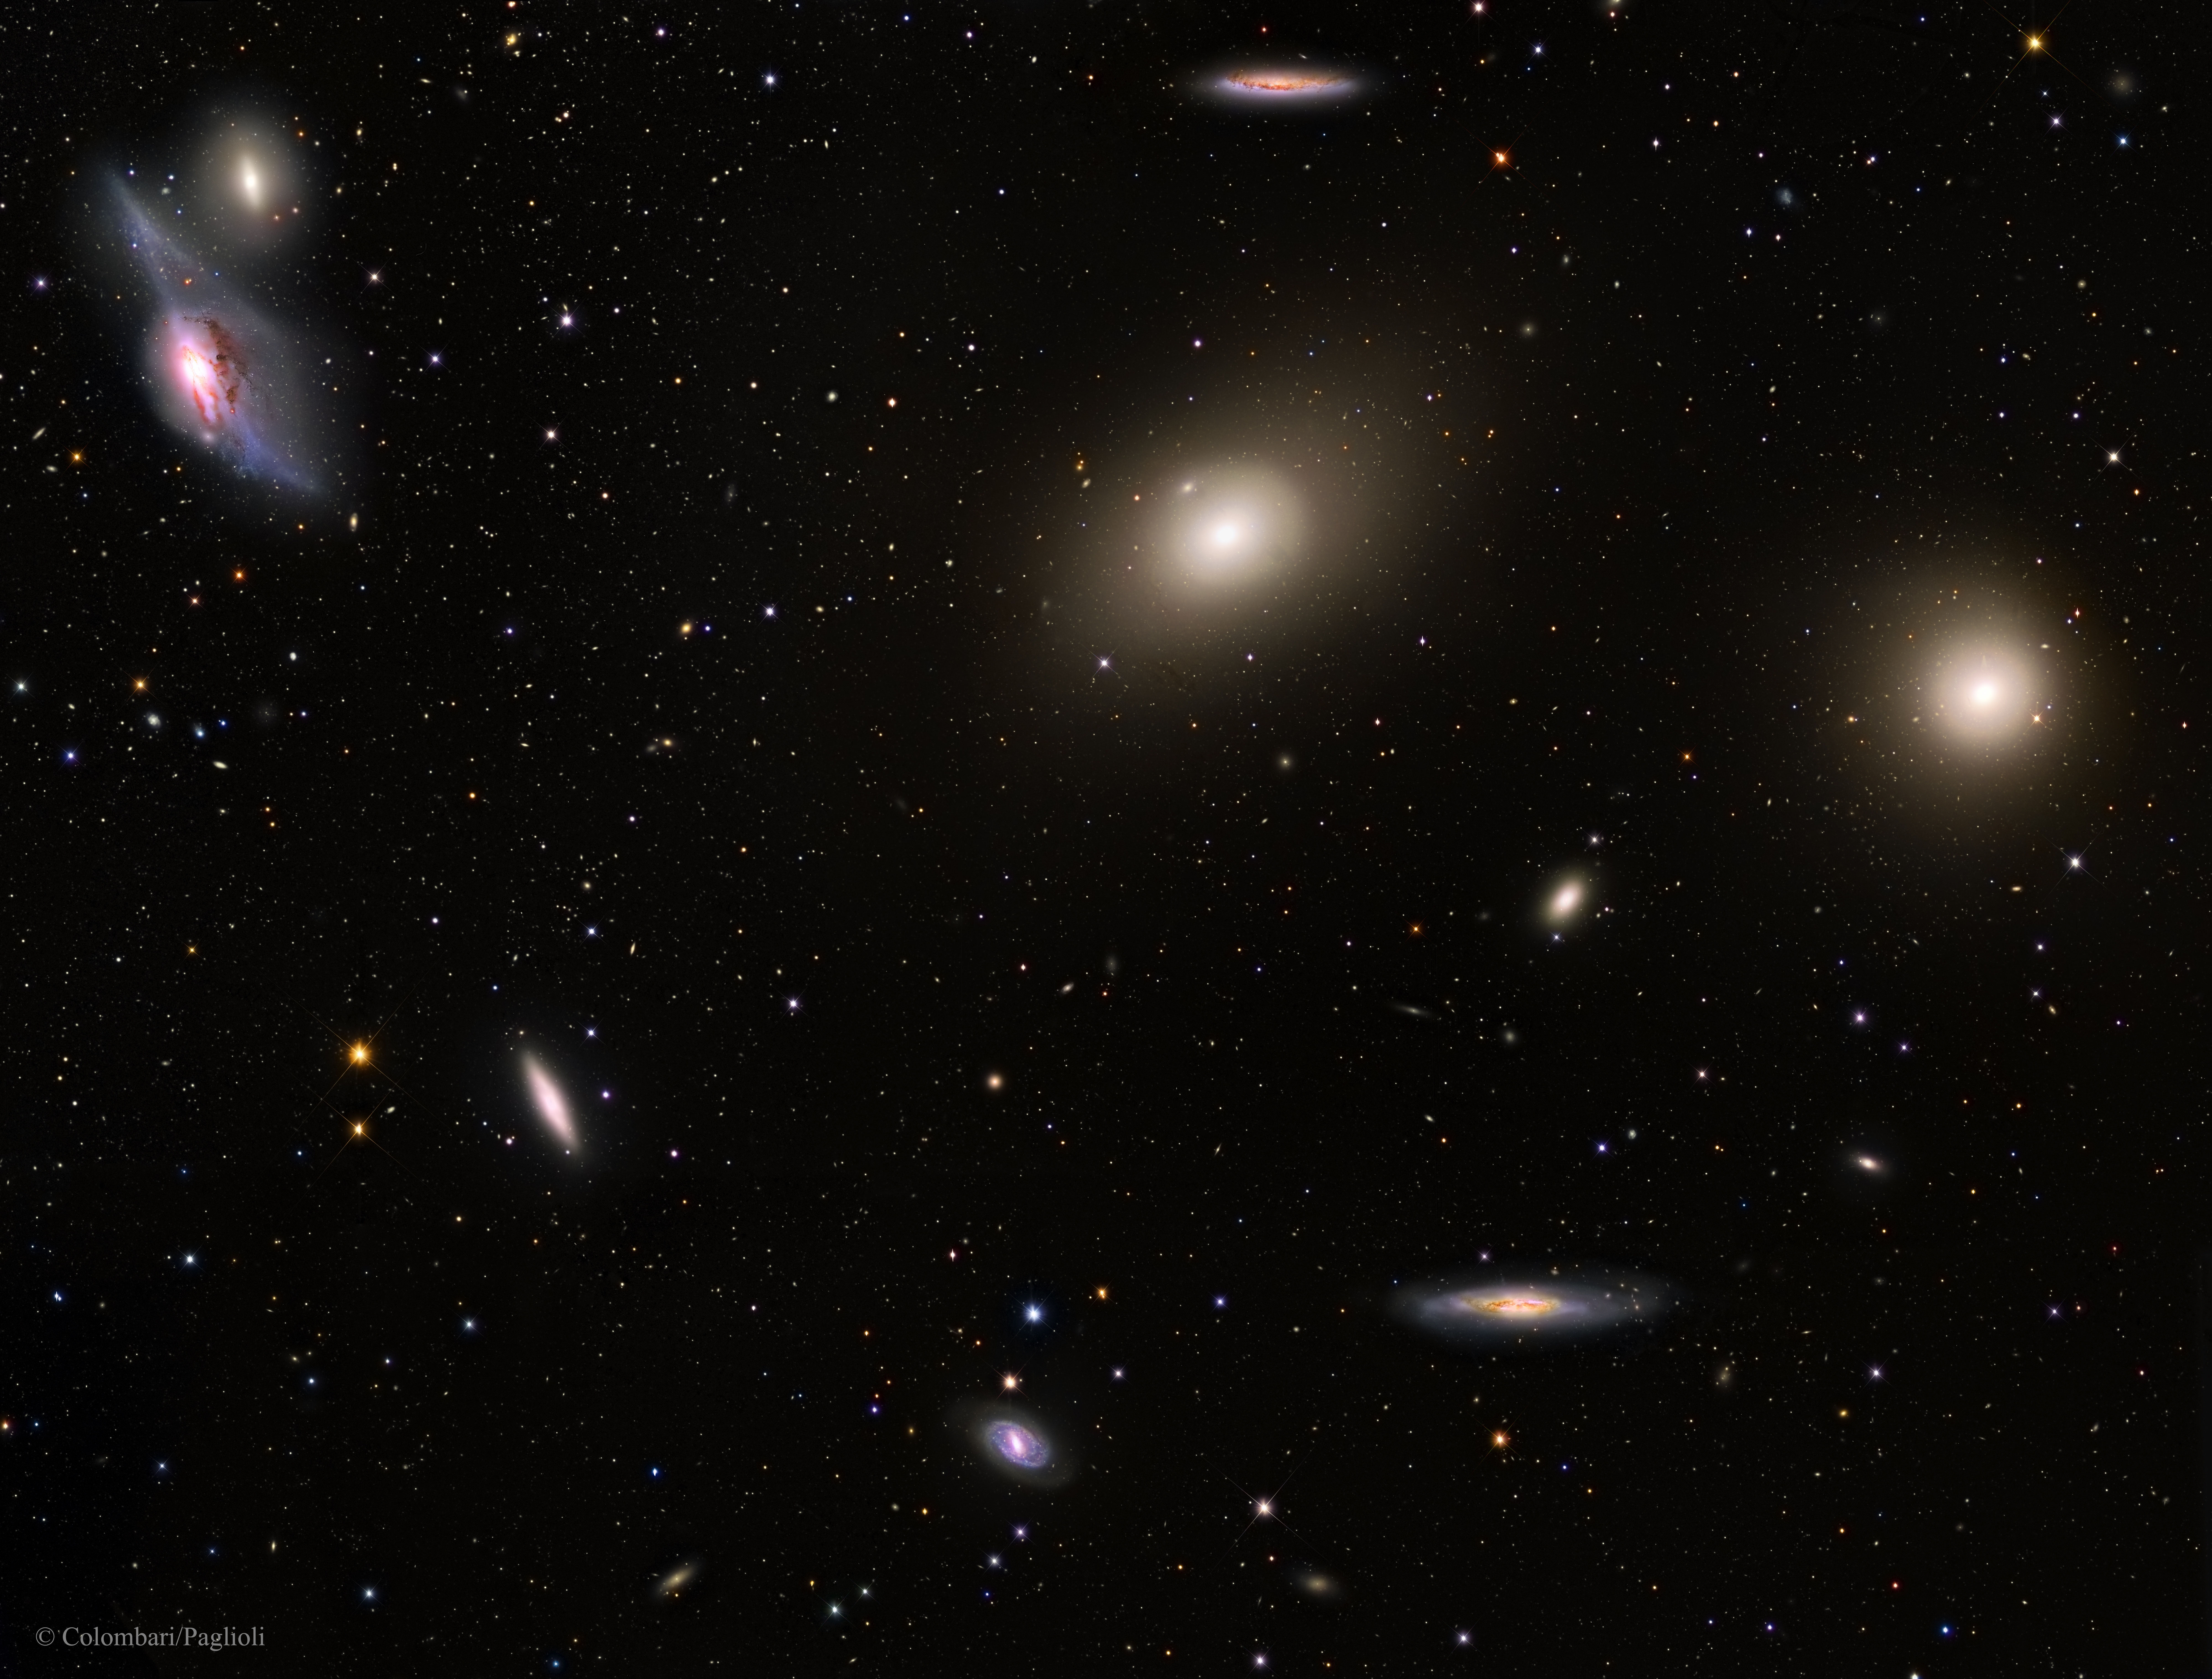 APOD: 2015 April 7 - In the Heart of the Virgo Cluster